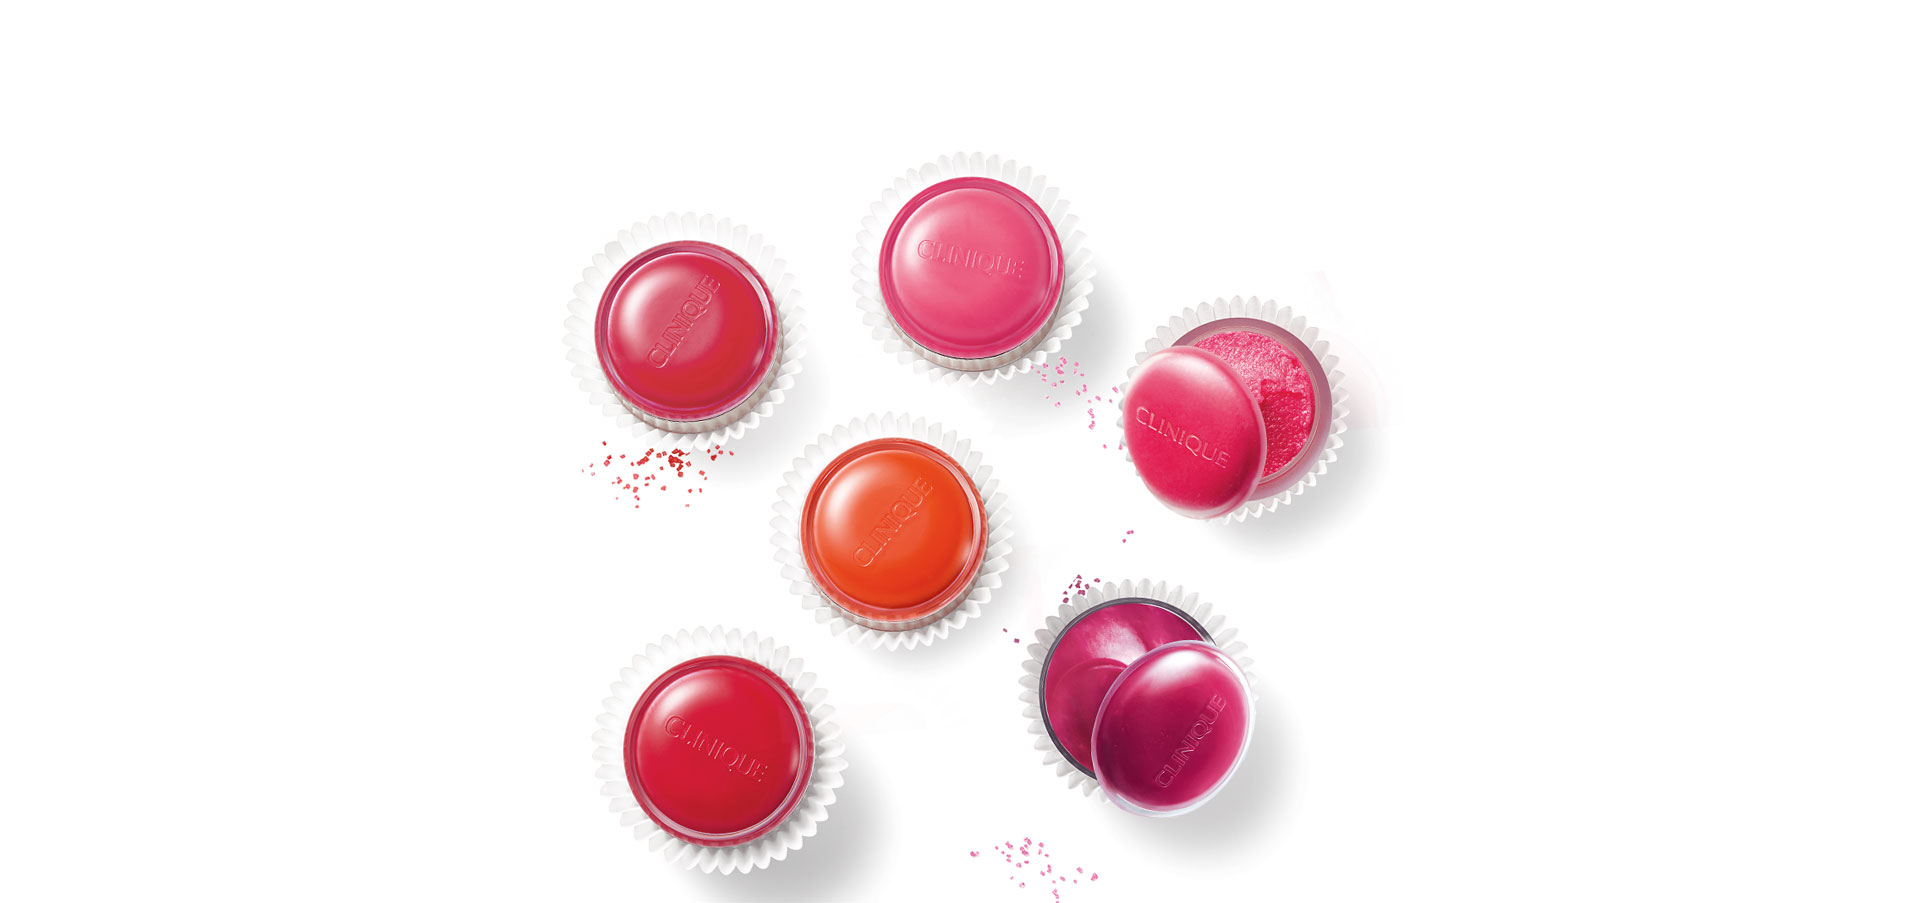 Clinique Sweetpots